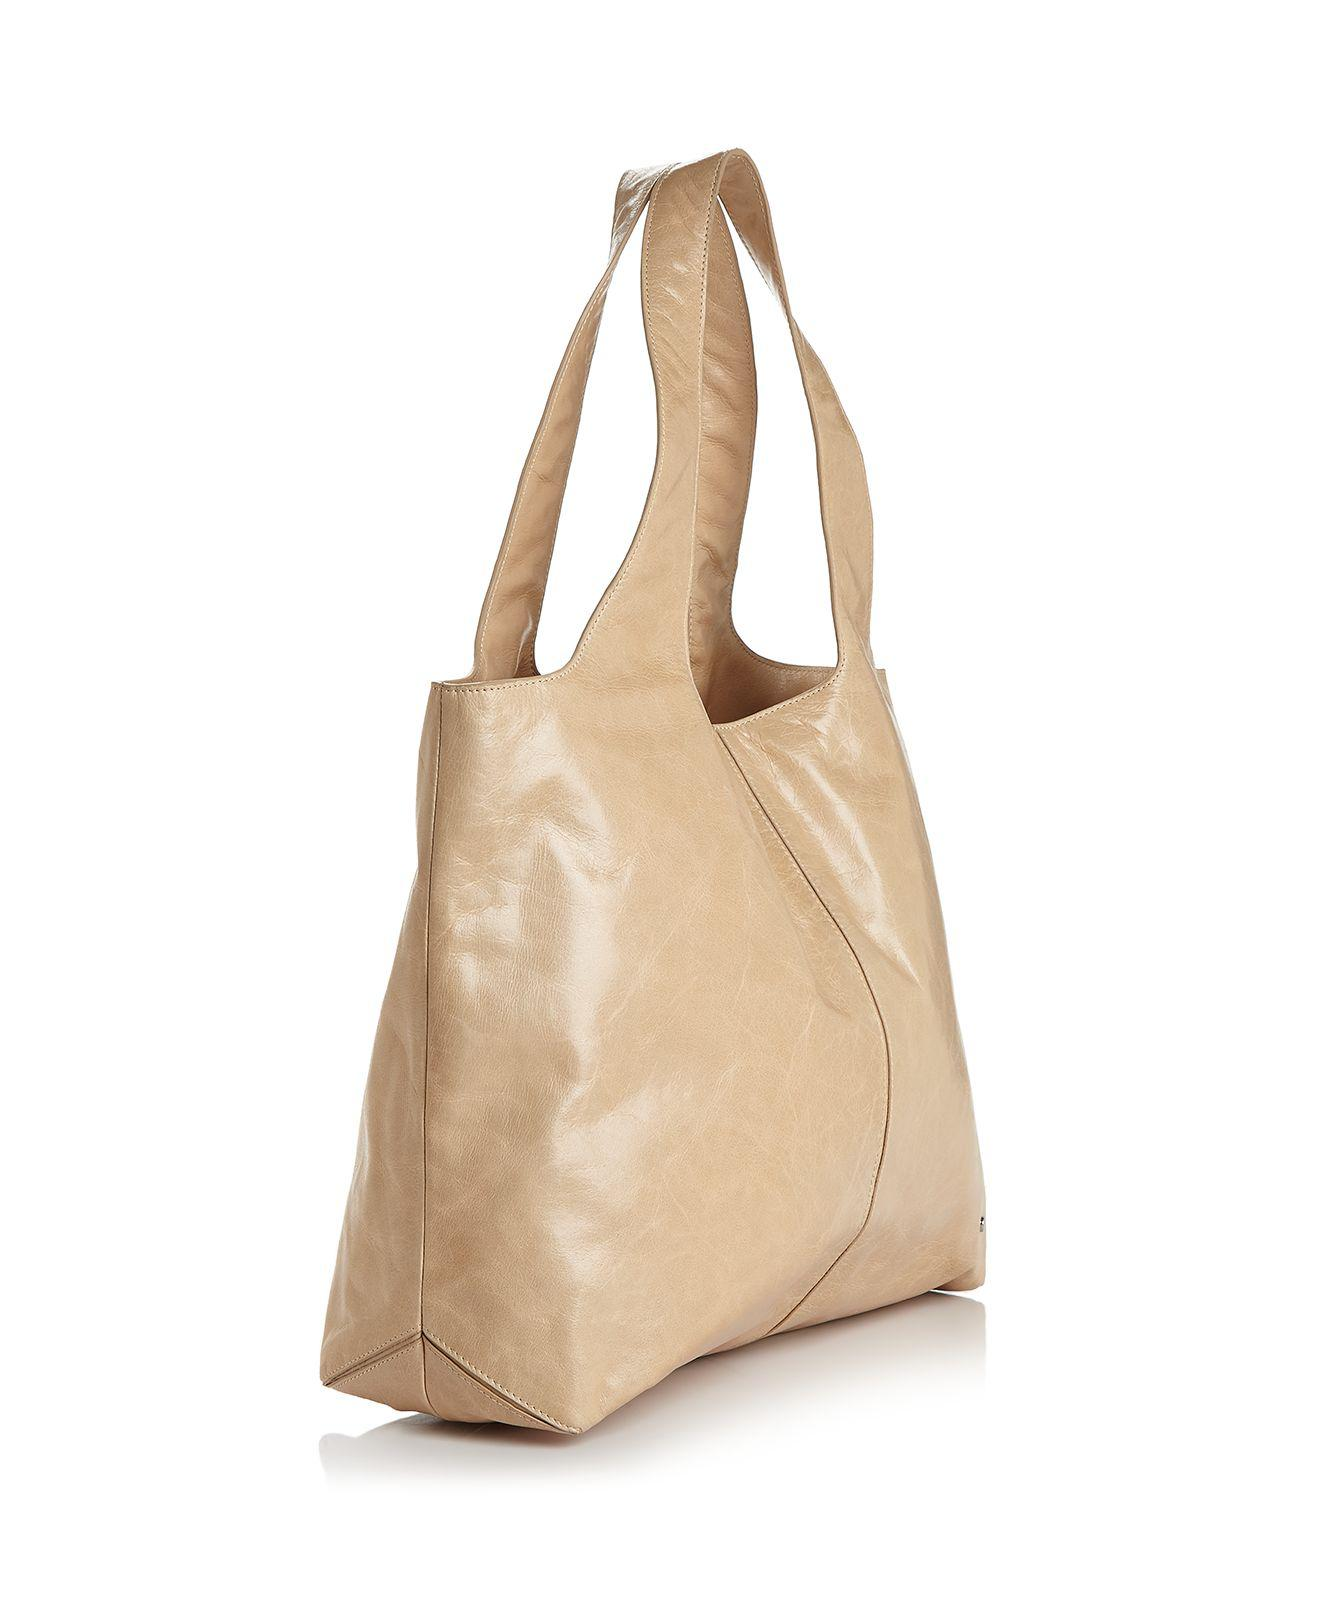 Lyst - Halston Tina Large Open Soft Leather Tote in Brown e6eb01a5d4ae0